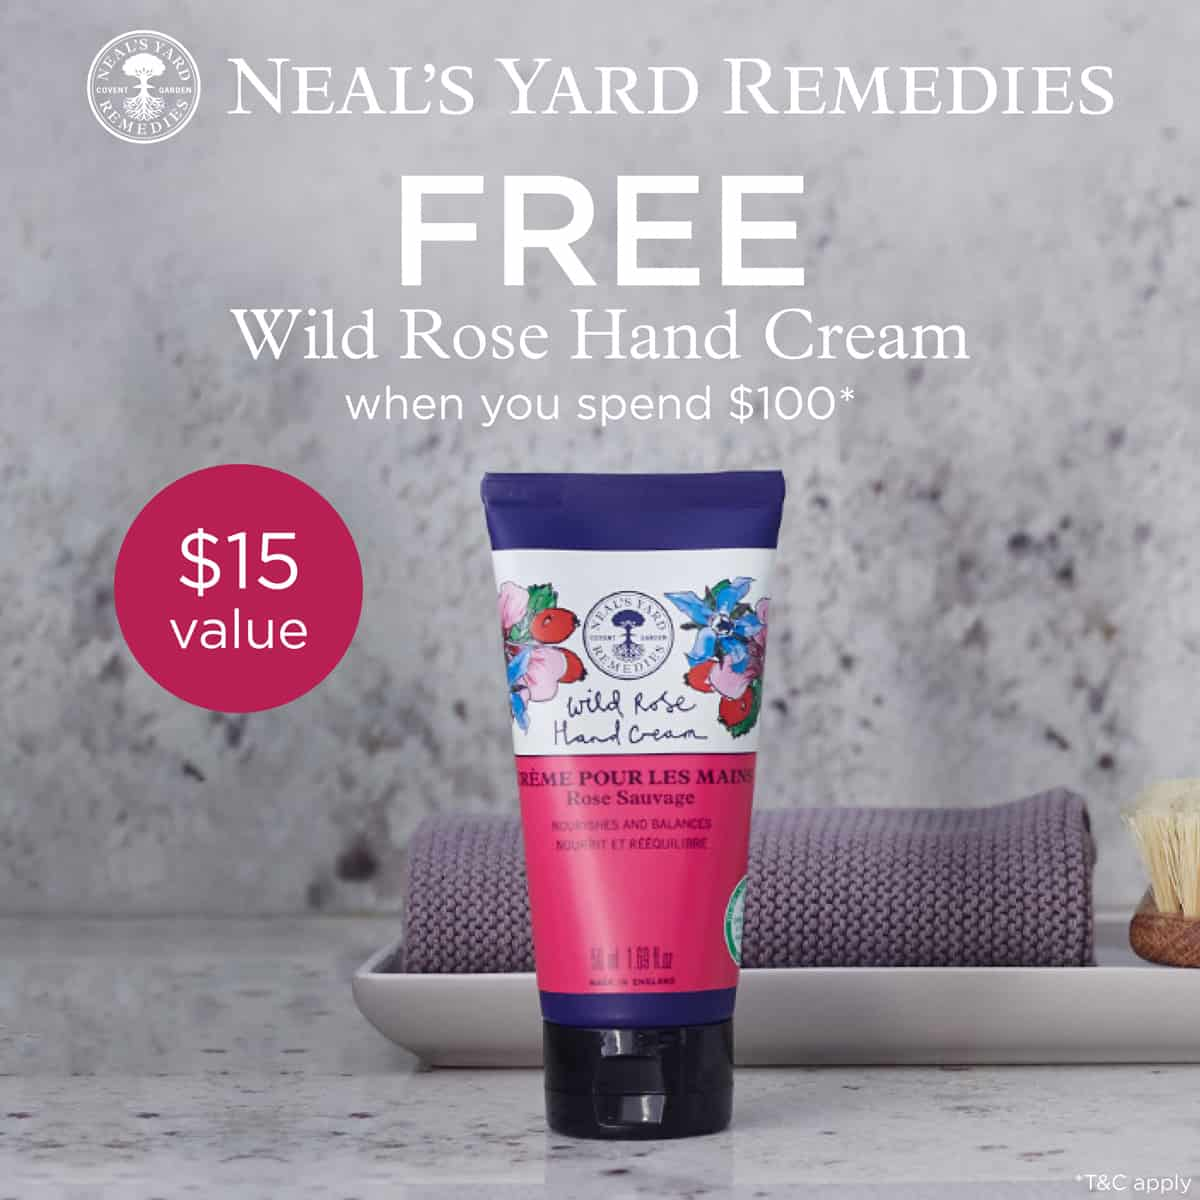 FREE WIld Rose Hand Cream with $100 purchase of Neal's Yard Remedies products. A great December Special